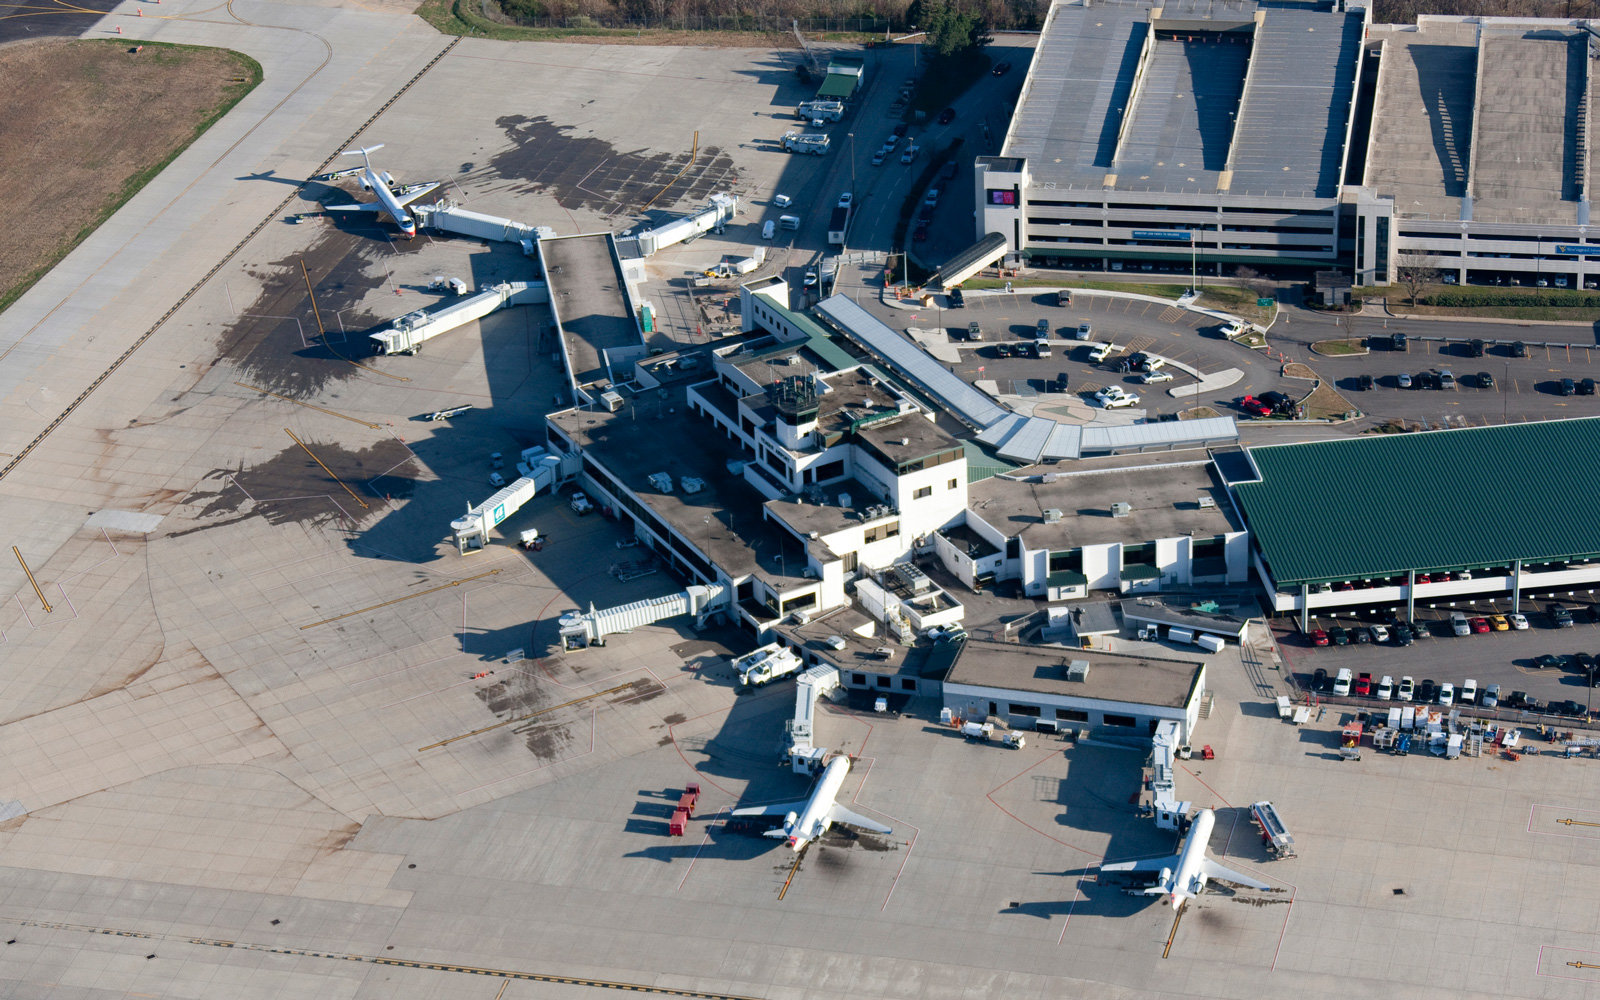 Yeager Airport in Charleston, WV